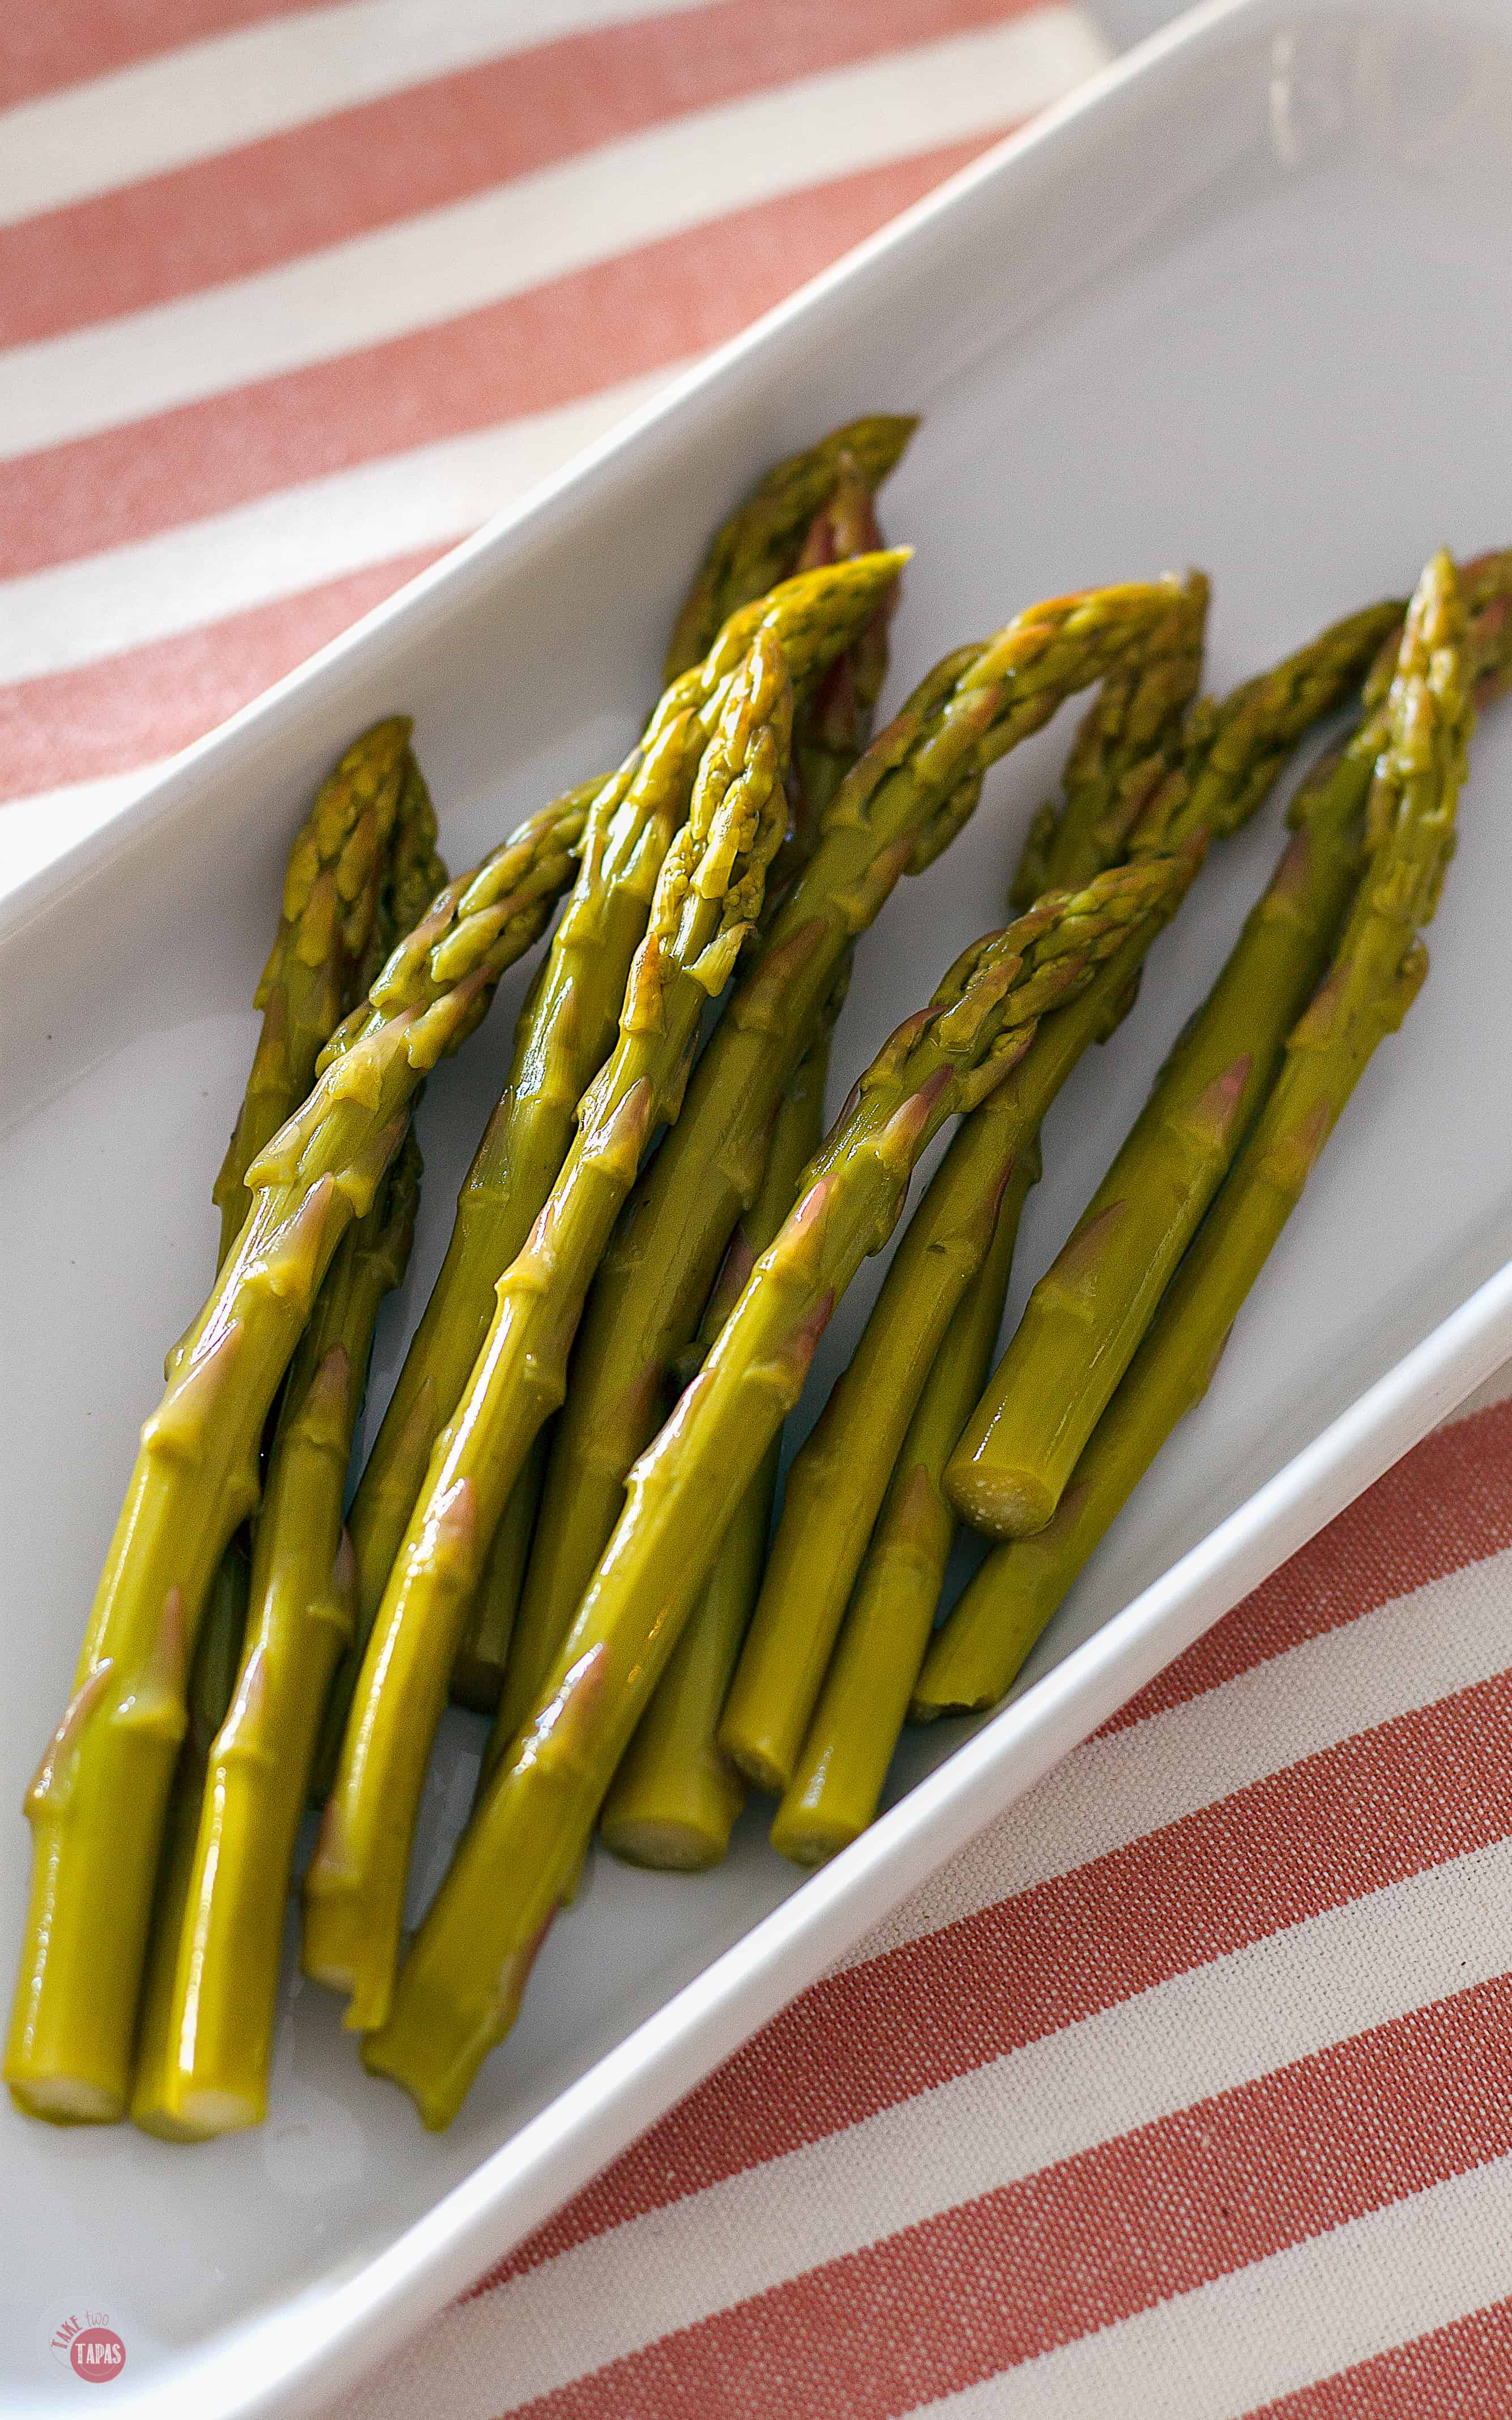 Asparagus pickles on a white tray